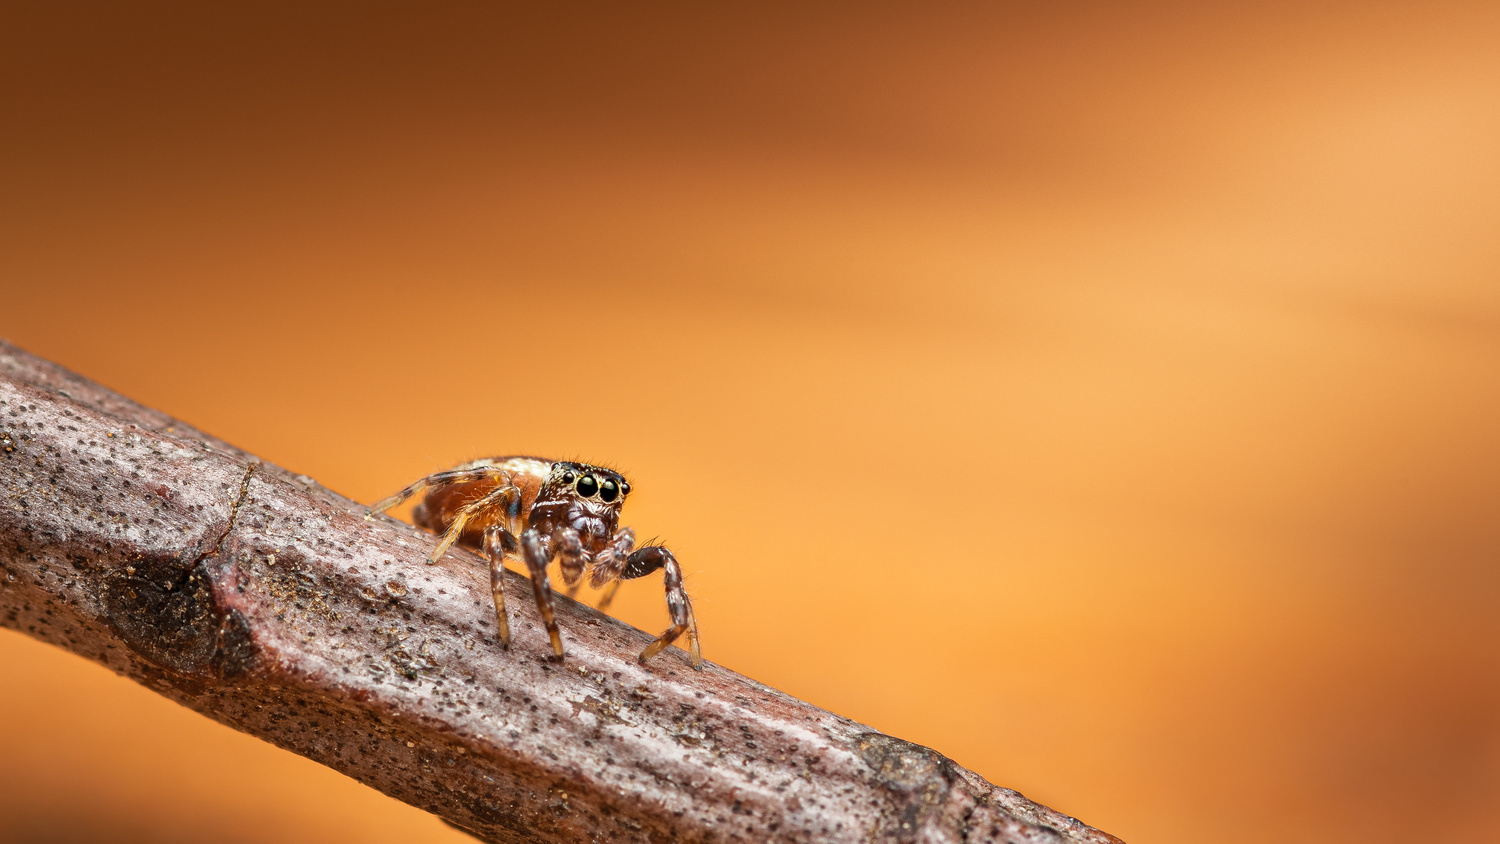 Sneak out by Atul Saluja